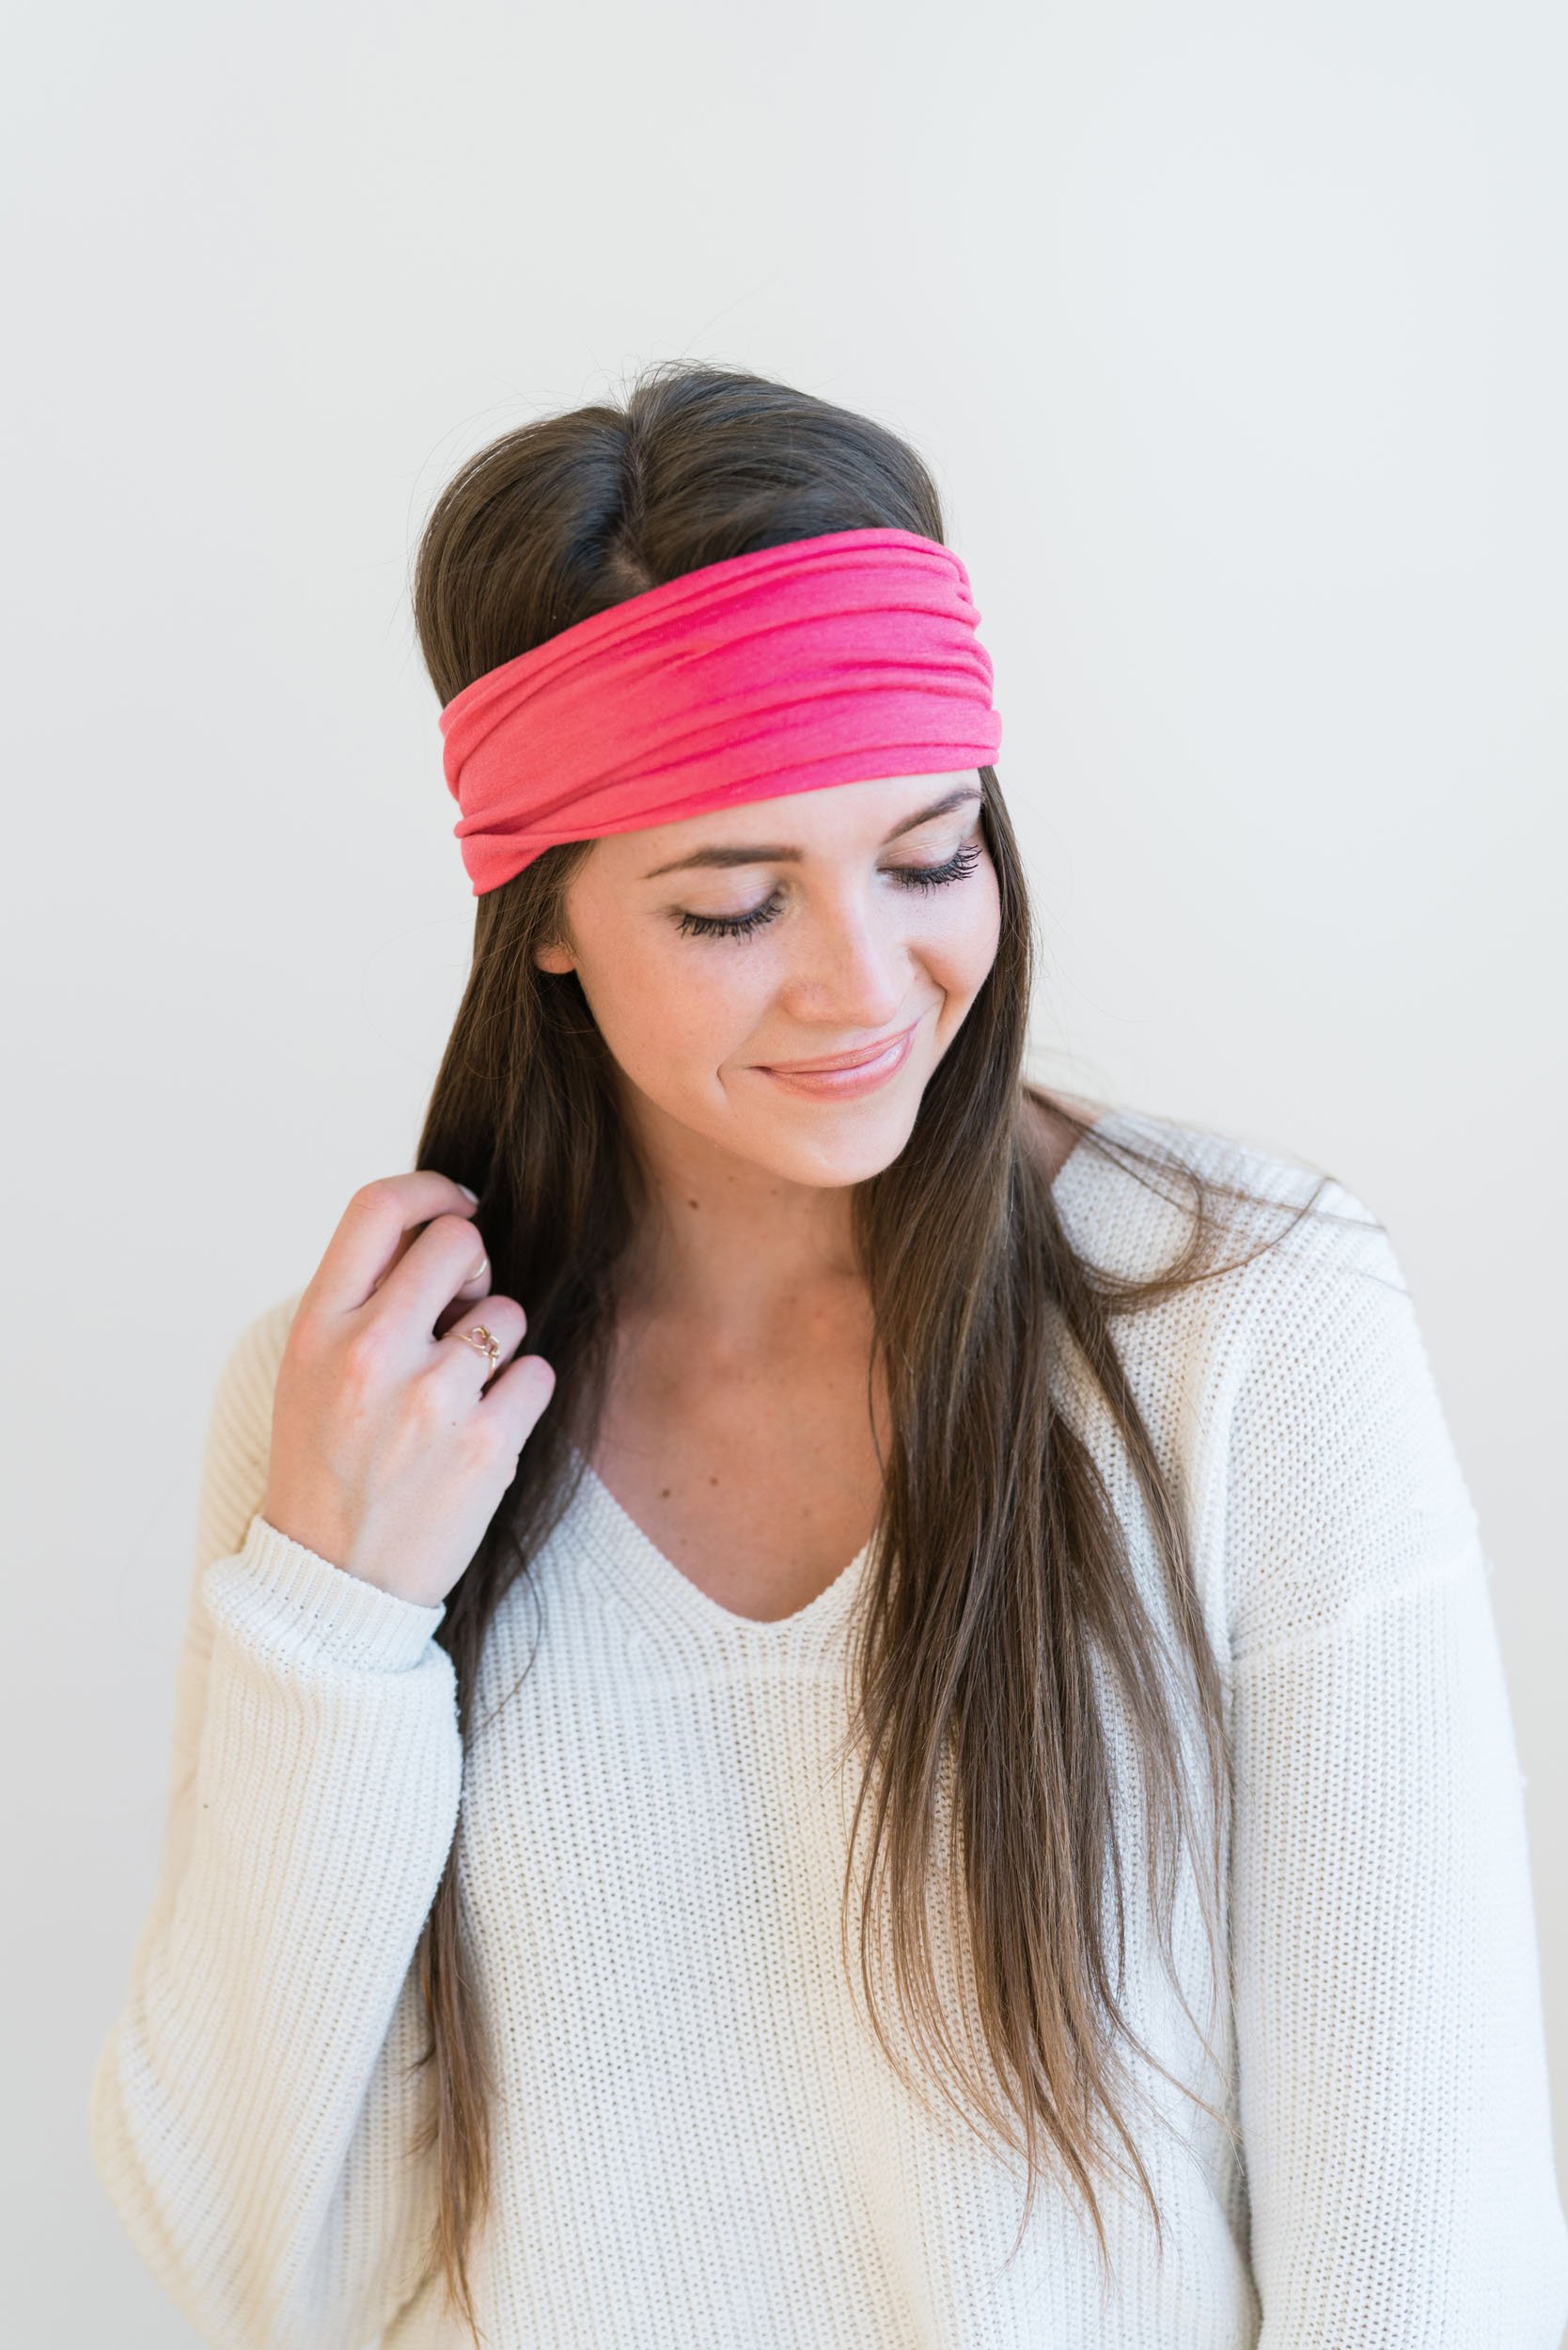 Maven Thread Women's Headband Yoga Running Exercise Sports Workout Athletic Gym Wide Sweat Wicking Stretchy No Slip 2 Pack Set Hot Pink SIREN by by Maven Thread (Image #5)